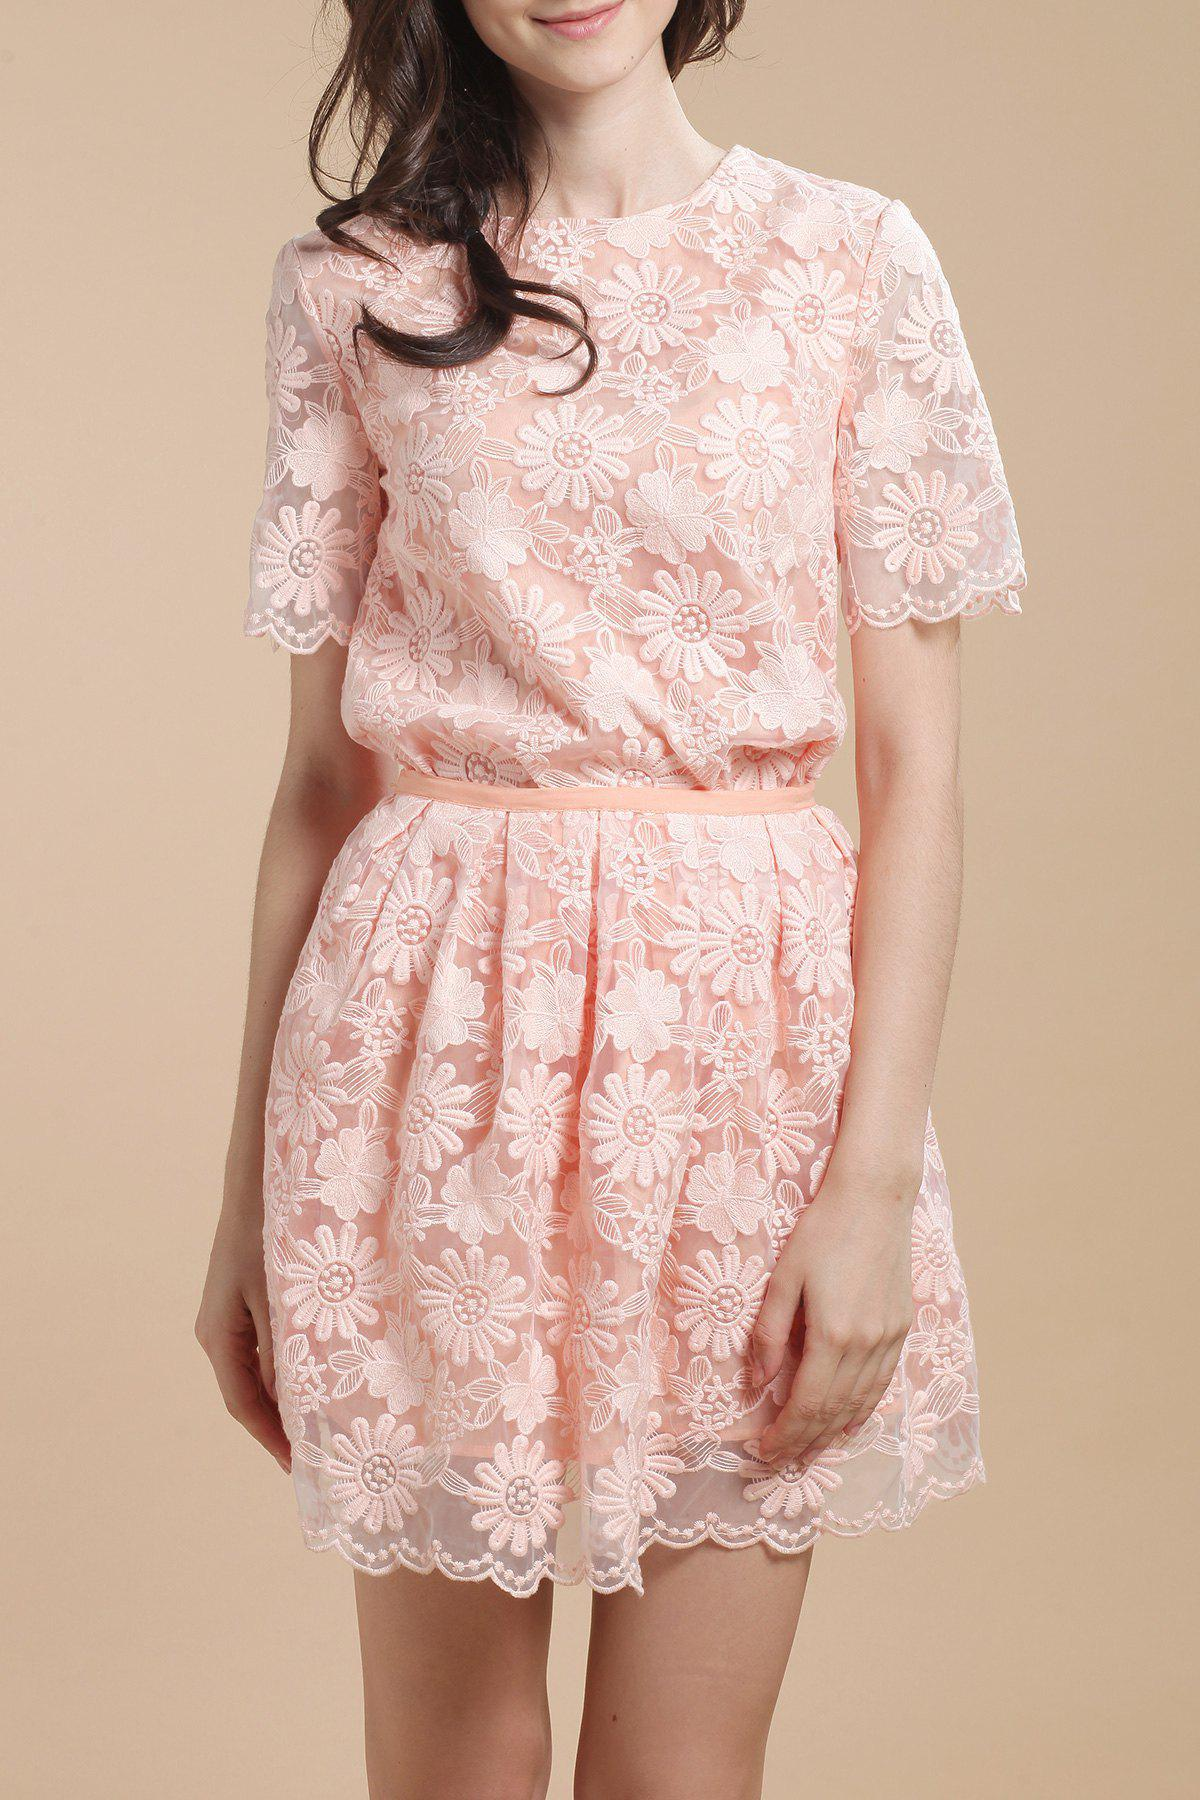 Fashion Flower Embroidered See-Through Blouse